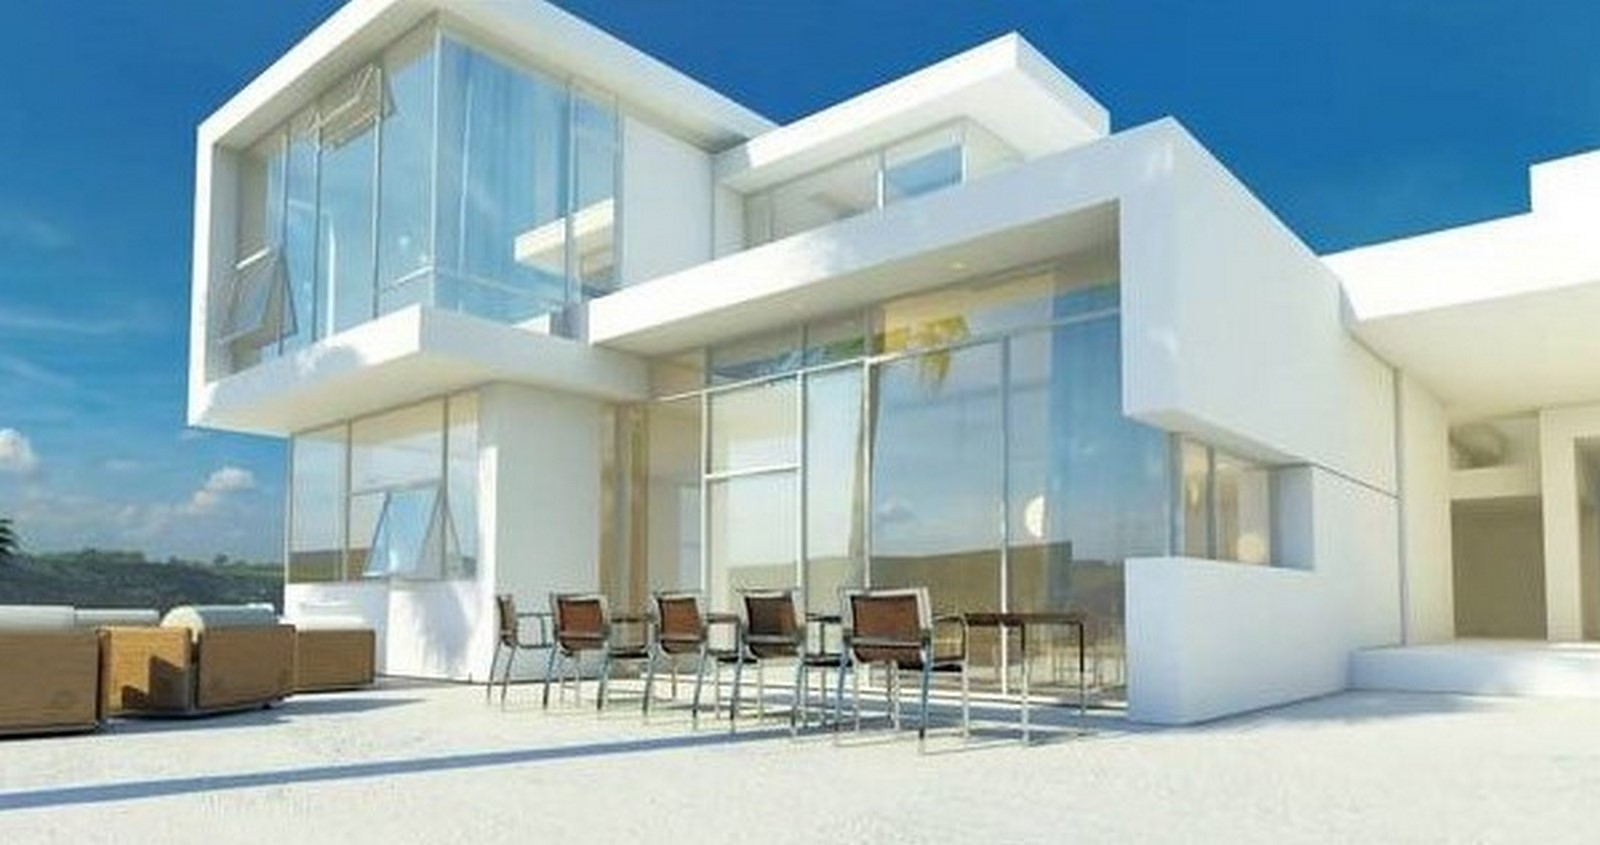 Characteristics of contemporary architecture - Sheet9